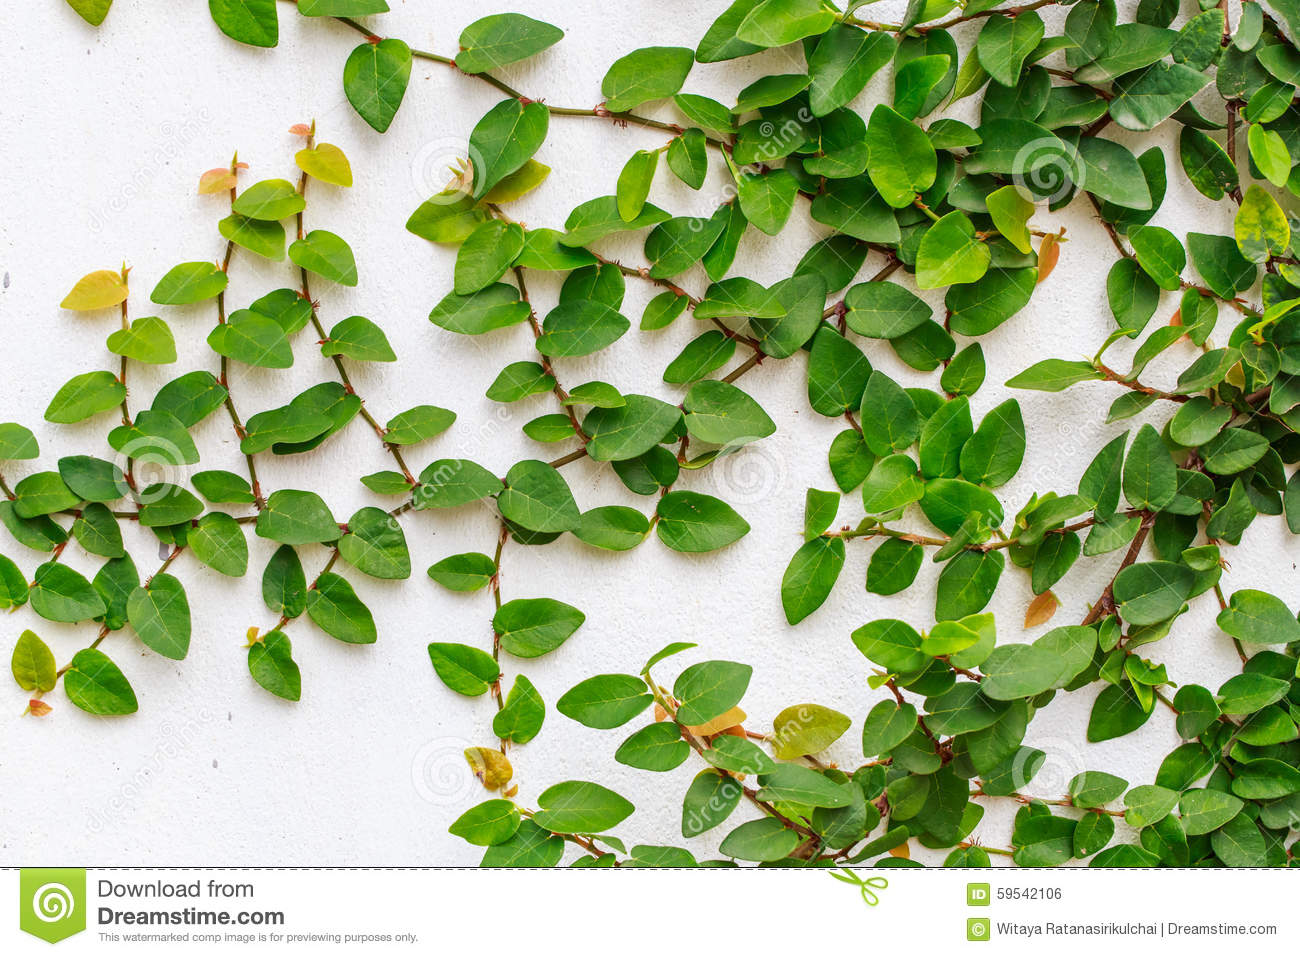 Download Abstract Green Creeper Plant On White Painted Concrete Wall Background Stock Photo - Image of living, attribute: 59542106